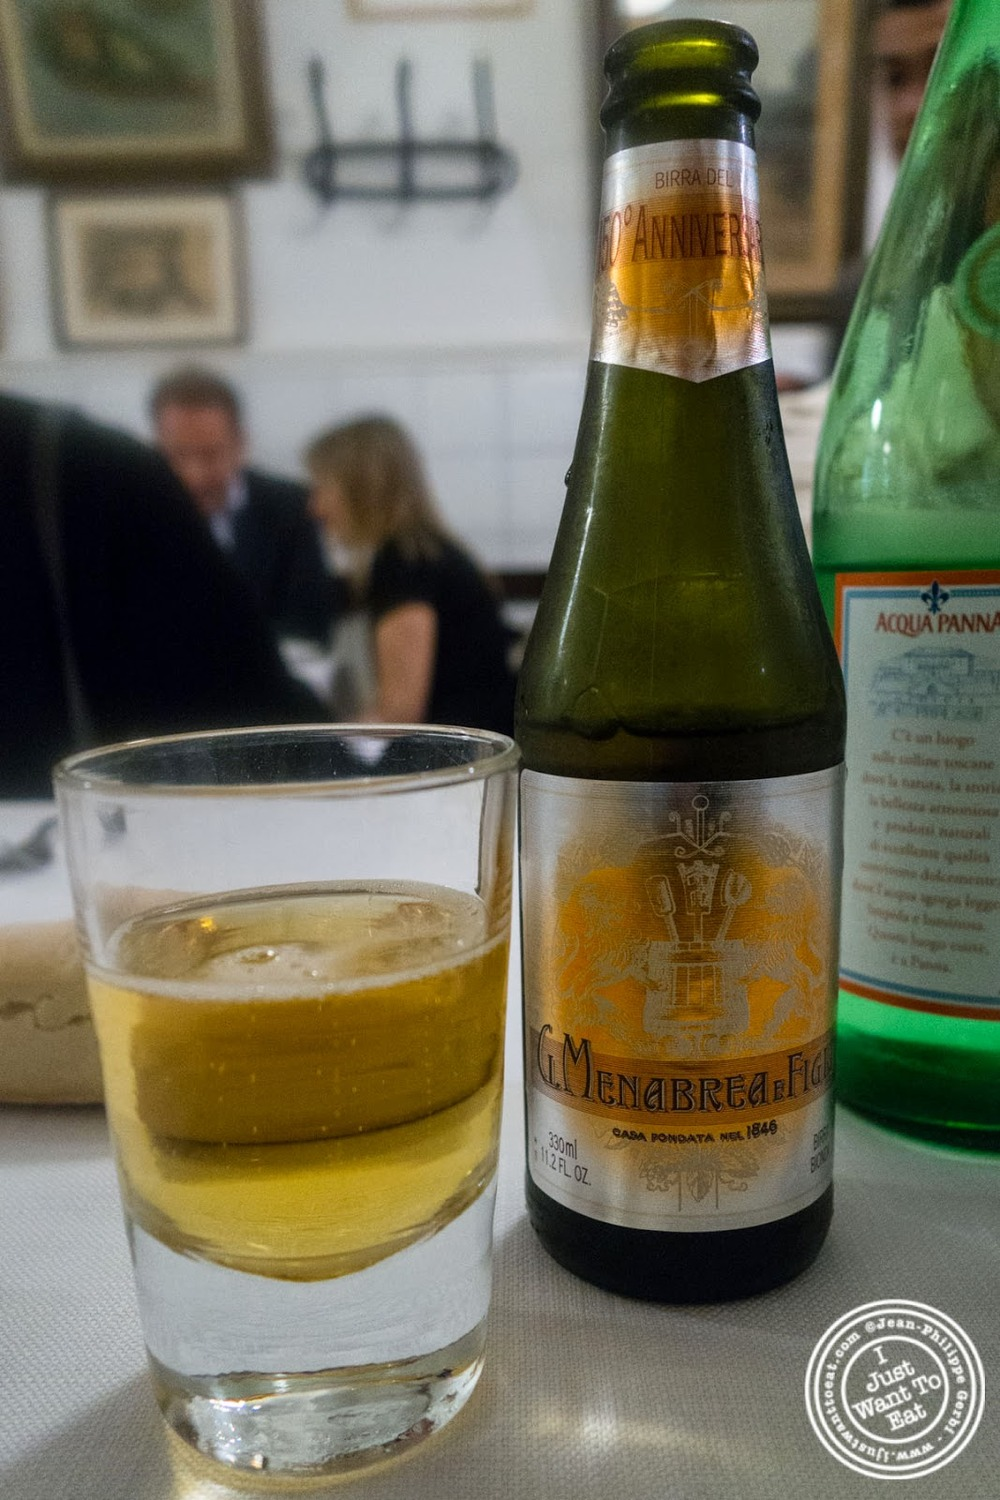 beer at Trattoria Sostanza, communal dining in Florence, Italy